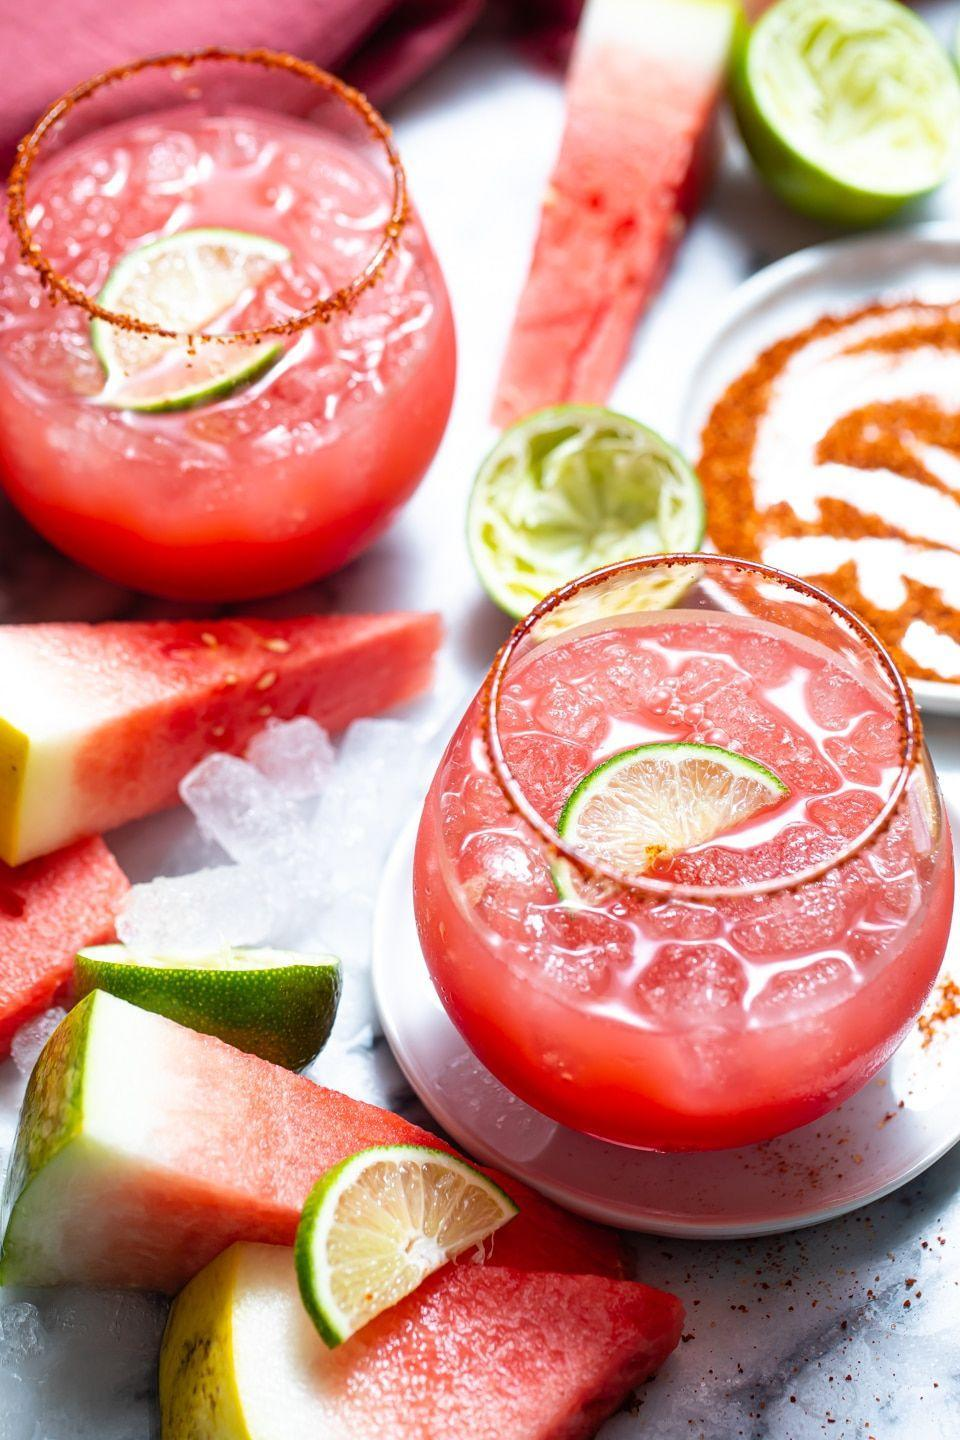 """<p>Here's another margarita recipe (because you can never have too many). This one is made with watermelon so it's super refreshing! </p><p><strong>Get the recipe at <a href=""""https://www.butterbeready.com/watermelon-margarita-recipe/"""" rel=""""nofollow noopener"""" target=""""_blank"""" data-ylk=""""slk:Butter Be Ready"""" class=""""link rapid-noclick-resp"""">Butter Be Ready</a>. </strong></p><p><a class=""""link rapid-noclick-resp"""" href=""""https://go.redirectingat.com?id=74968X1596630&url=https%3A%2F%2Fwww.walmart.com%2Fsearch%2F%3Fquery%3Dfood%2Bprocessor&sref=https%3A%2F%2Fwww.thepioneerwoman.com%2Ffood-cooking%2Fmeals-menus%2Fg36432840%2Ffourth-of-july-drinks%2F"""" rel=""""nofollow noopener"""" target=""""_blank"""" data-ylk=""""slk:SHOP FOOD PROCESSORS"""">SHOP FOOD PROCESSORS</a></p>"""